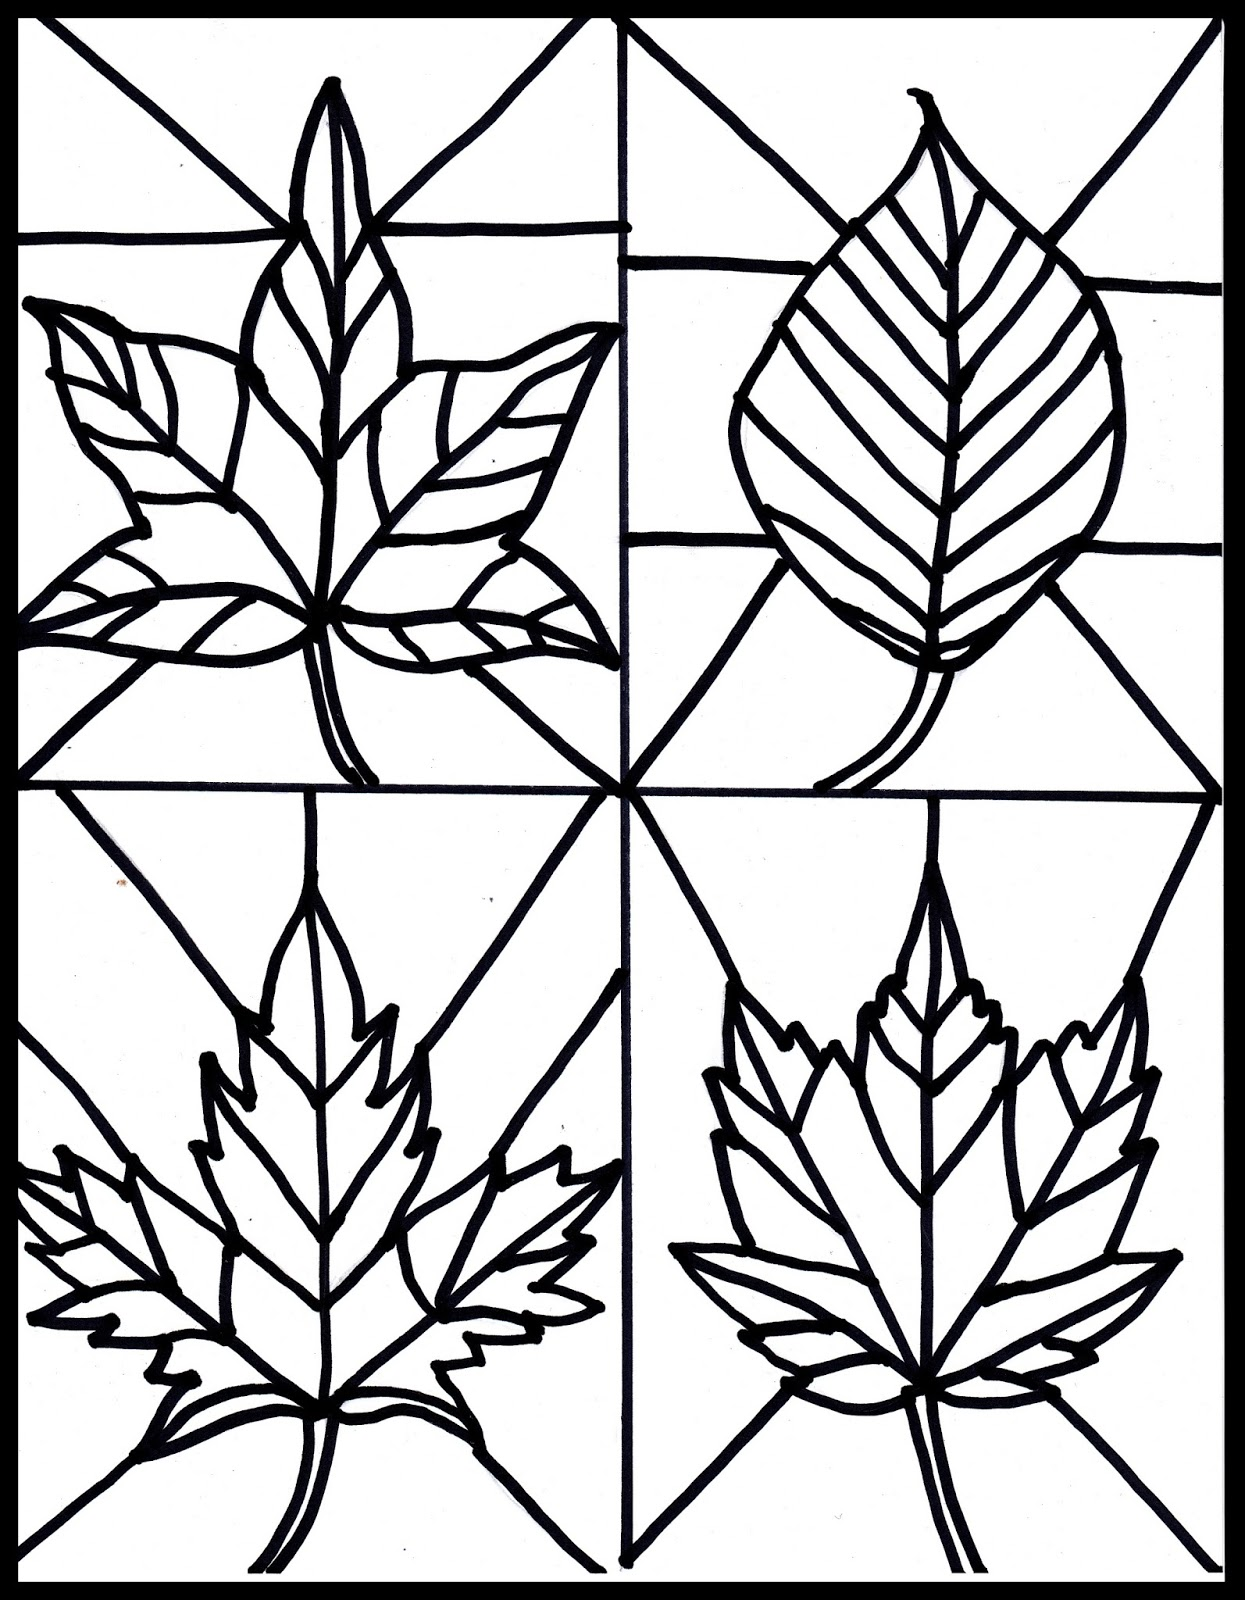 Make it easy crafts: Kid\'s Craft- stained glass leaves free printable